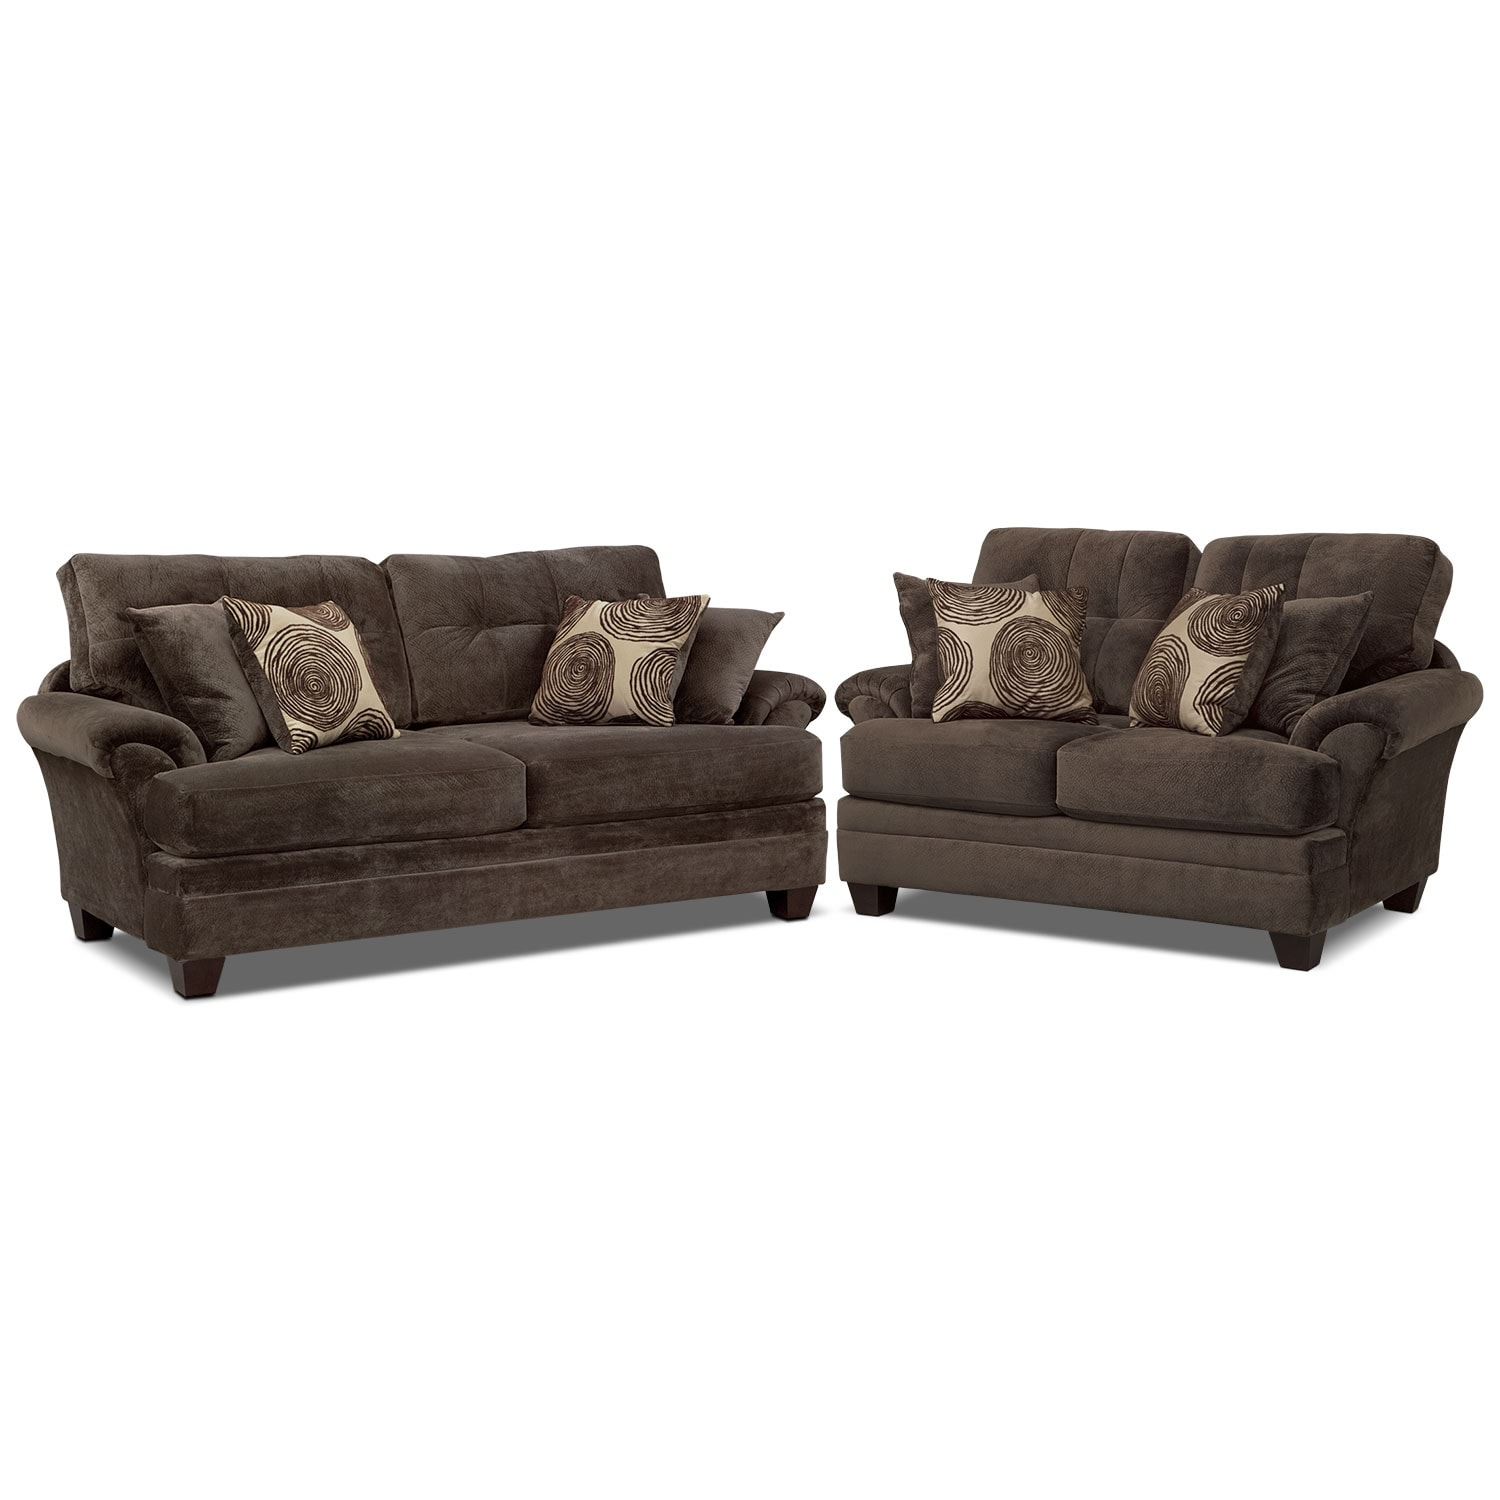 Value City Furniture Clearance Center: Cordelle Sofa And Loveseat Set - Chocolate